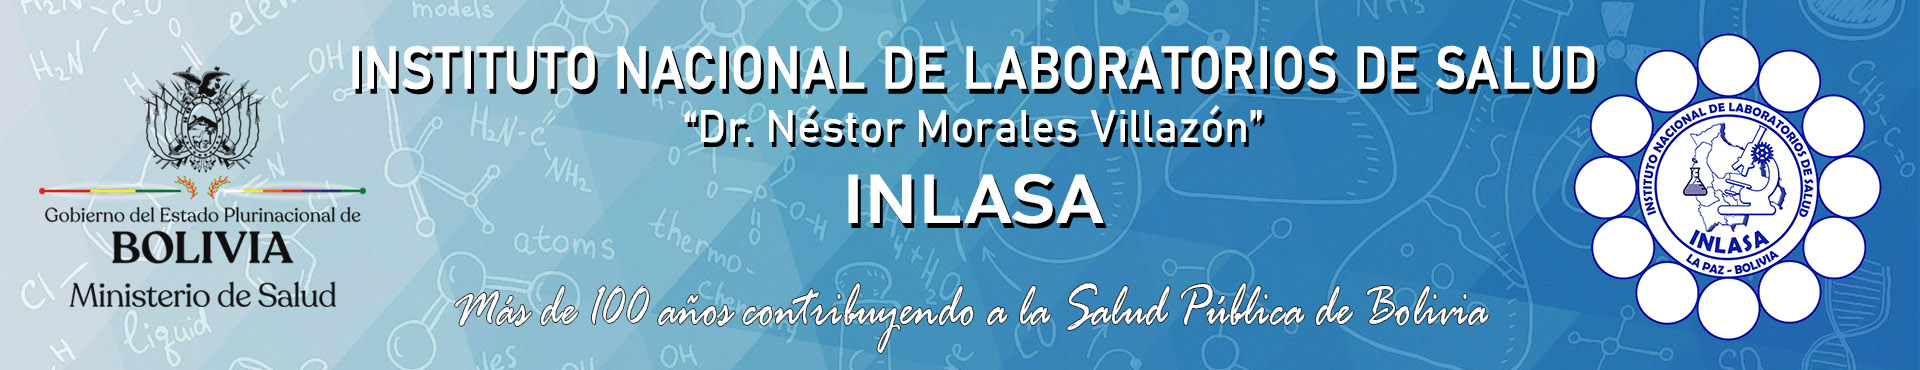 INLASA | Instituto Nacional de Laboratorios de Salud